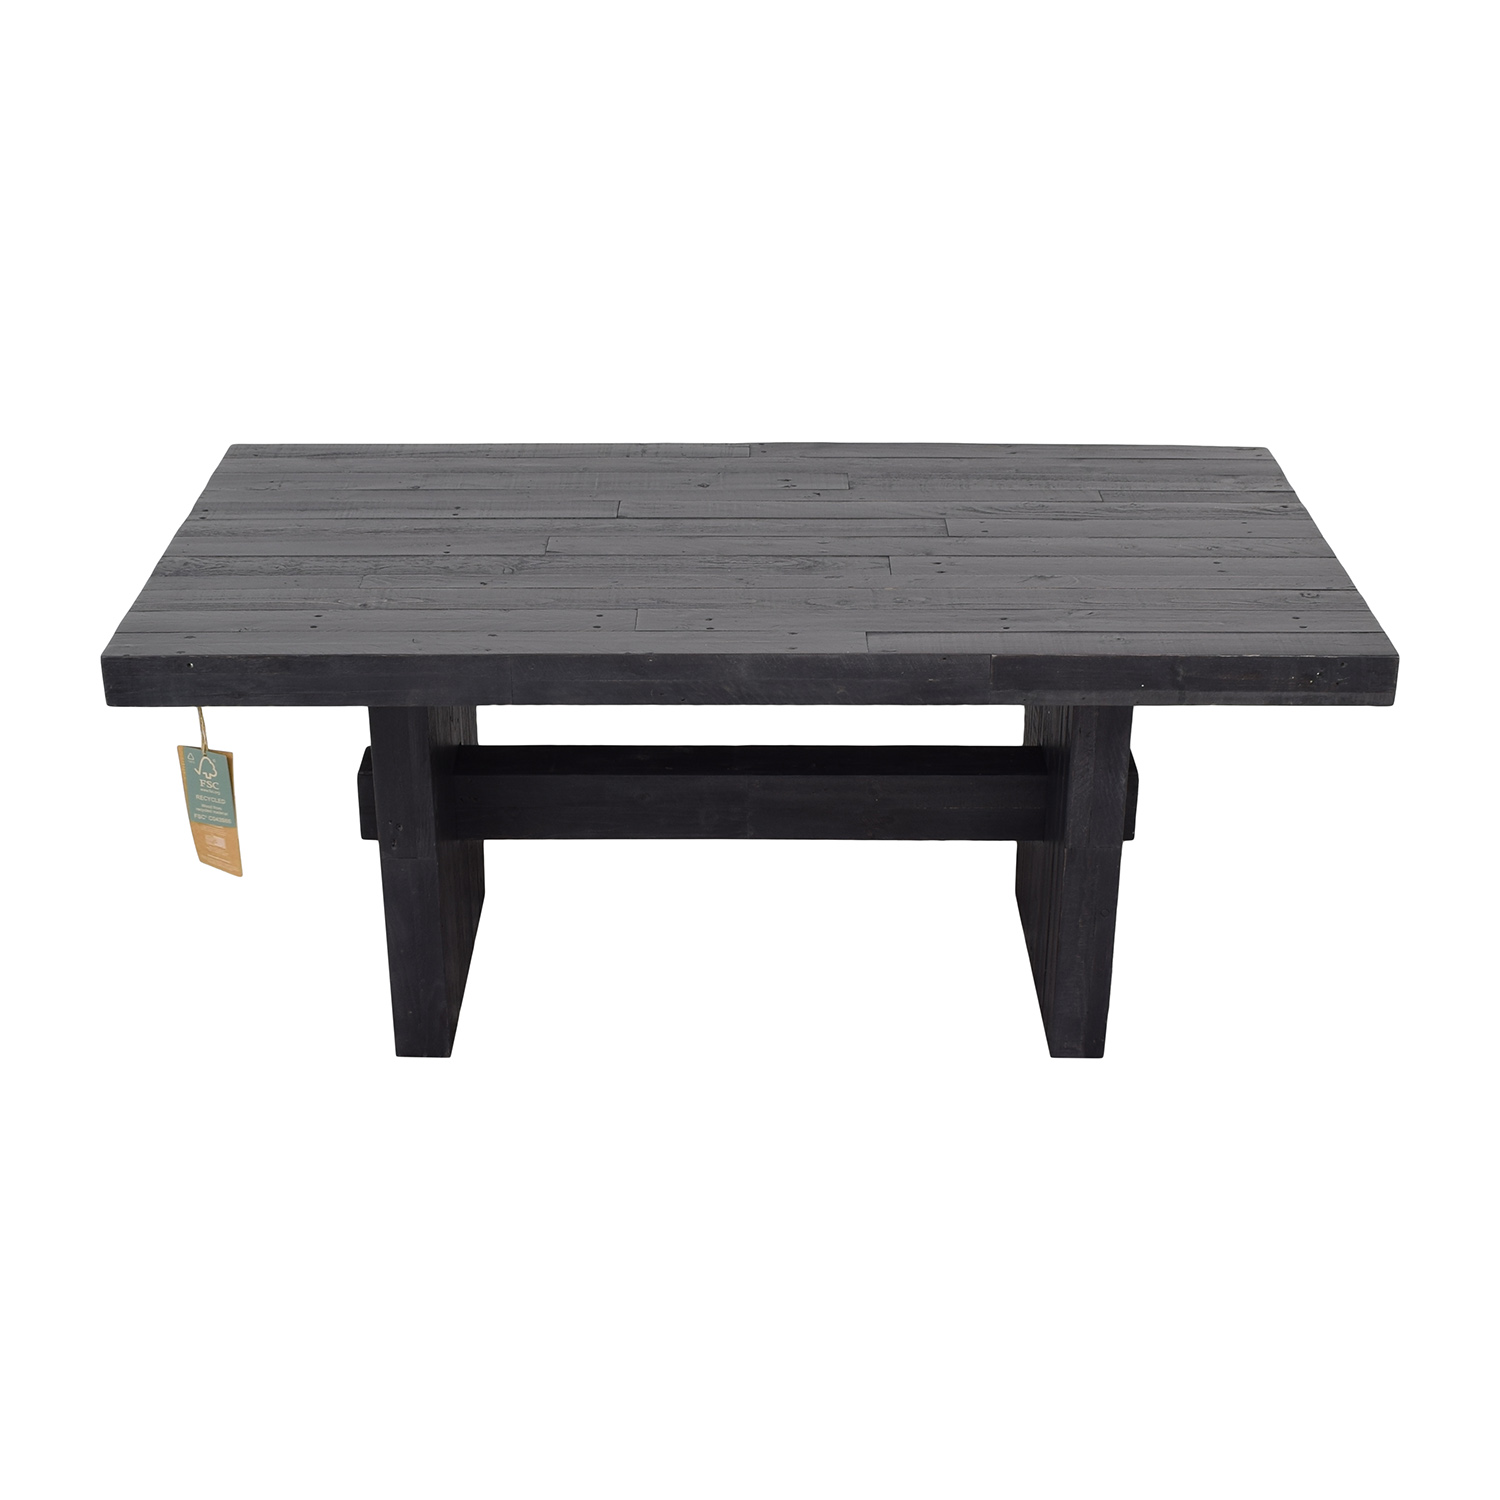 West Elm West Elm Emmerson Dining Table used